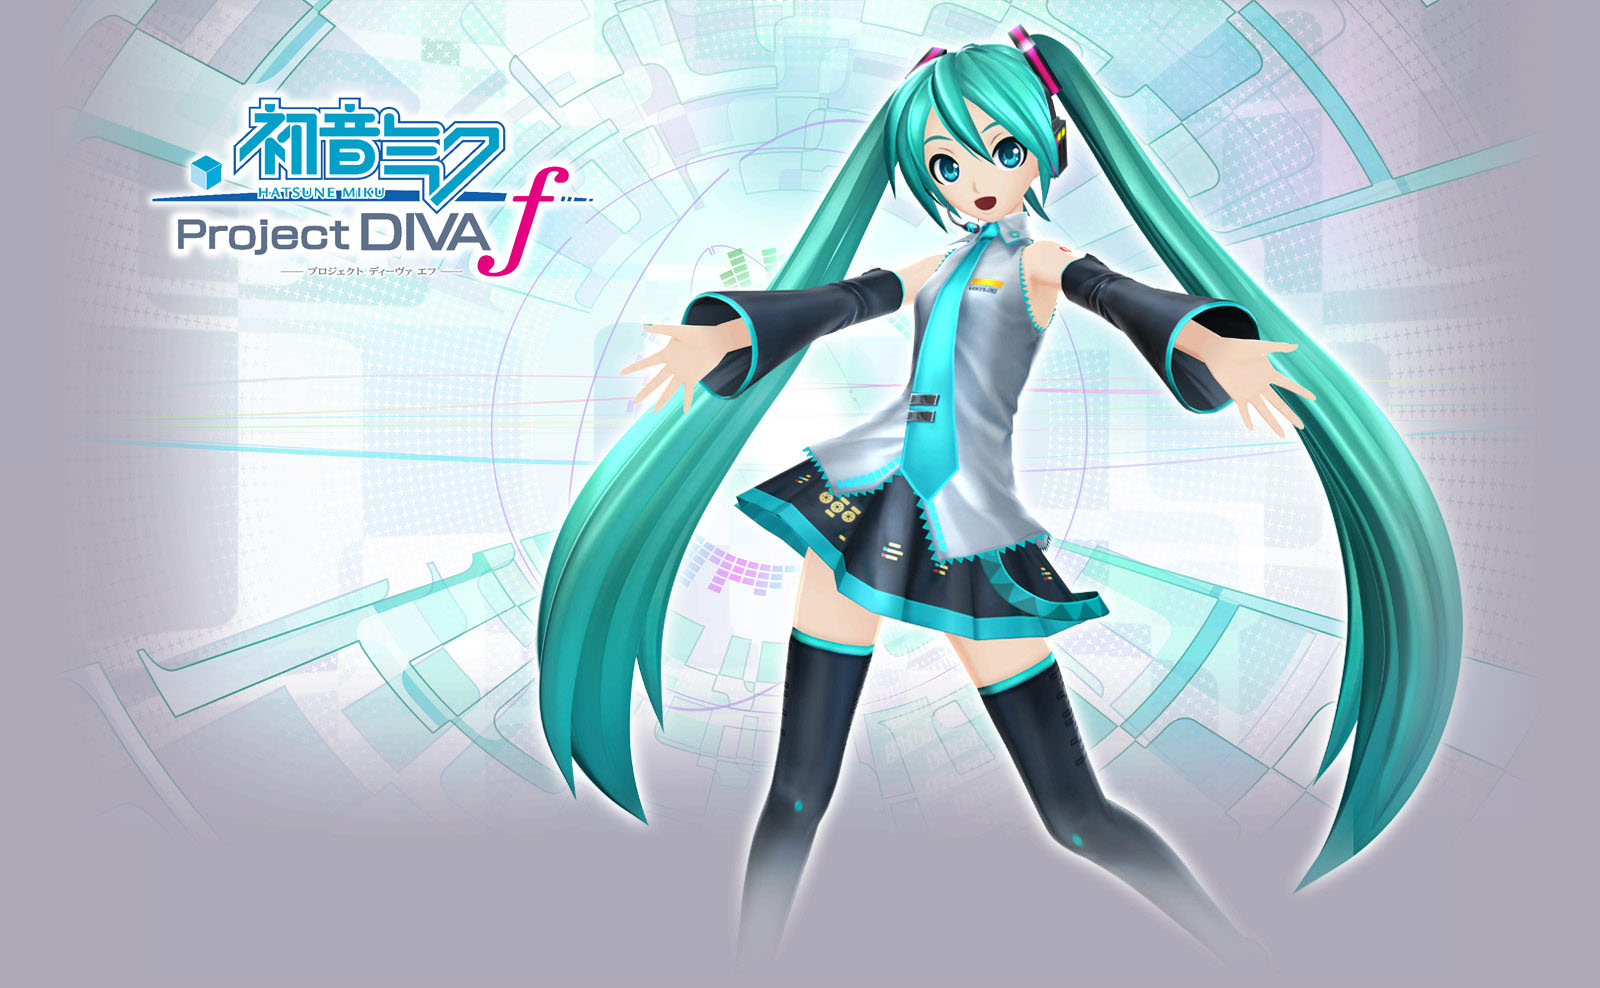 Hatsune miku project diva wallpaper wallpapersafari - Hatsune miku project diva ...